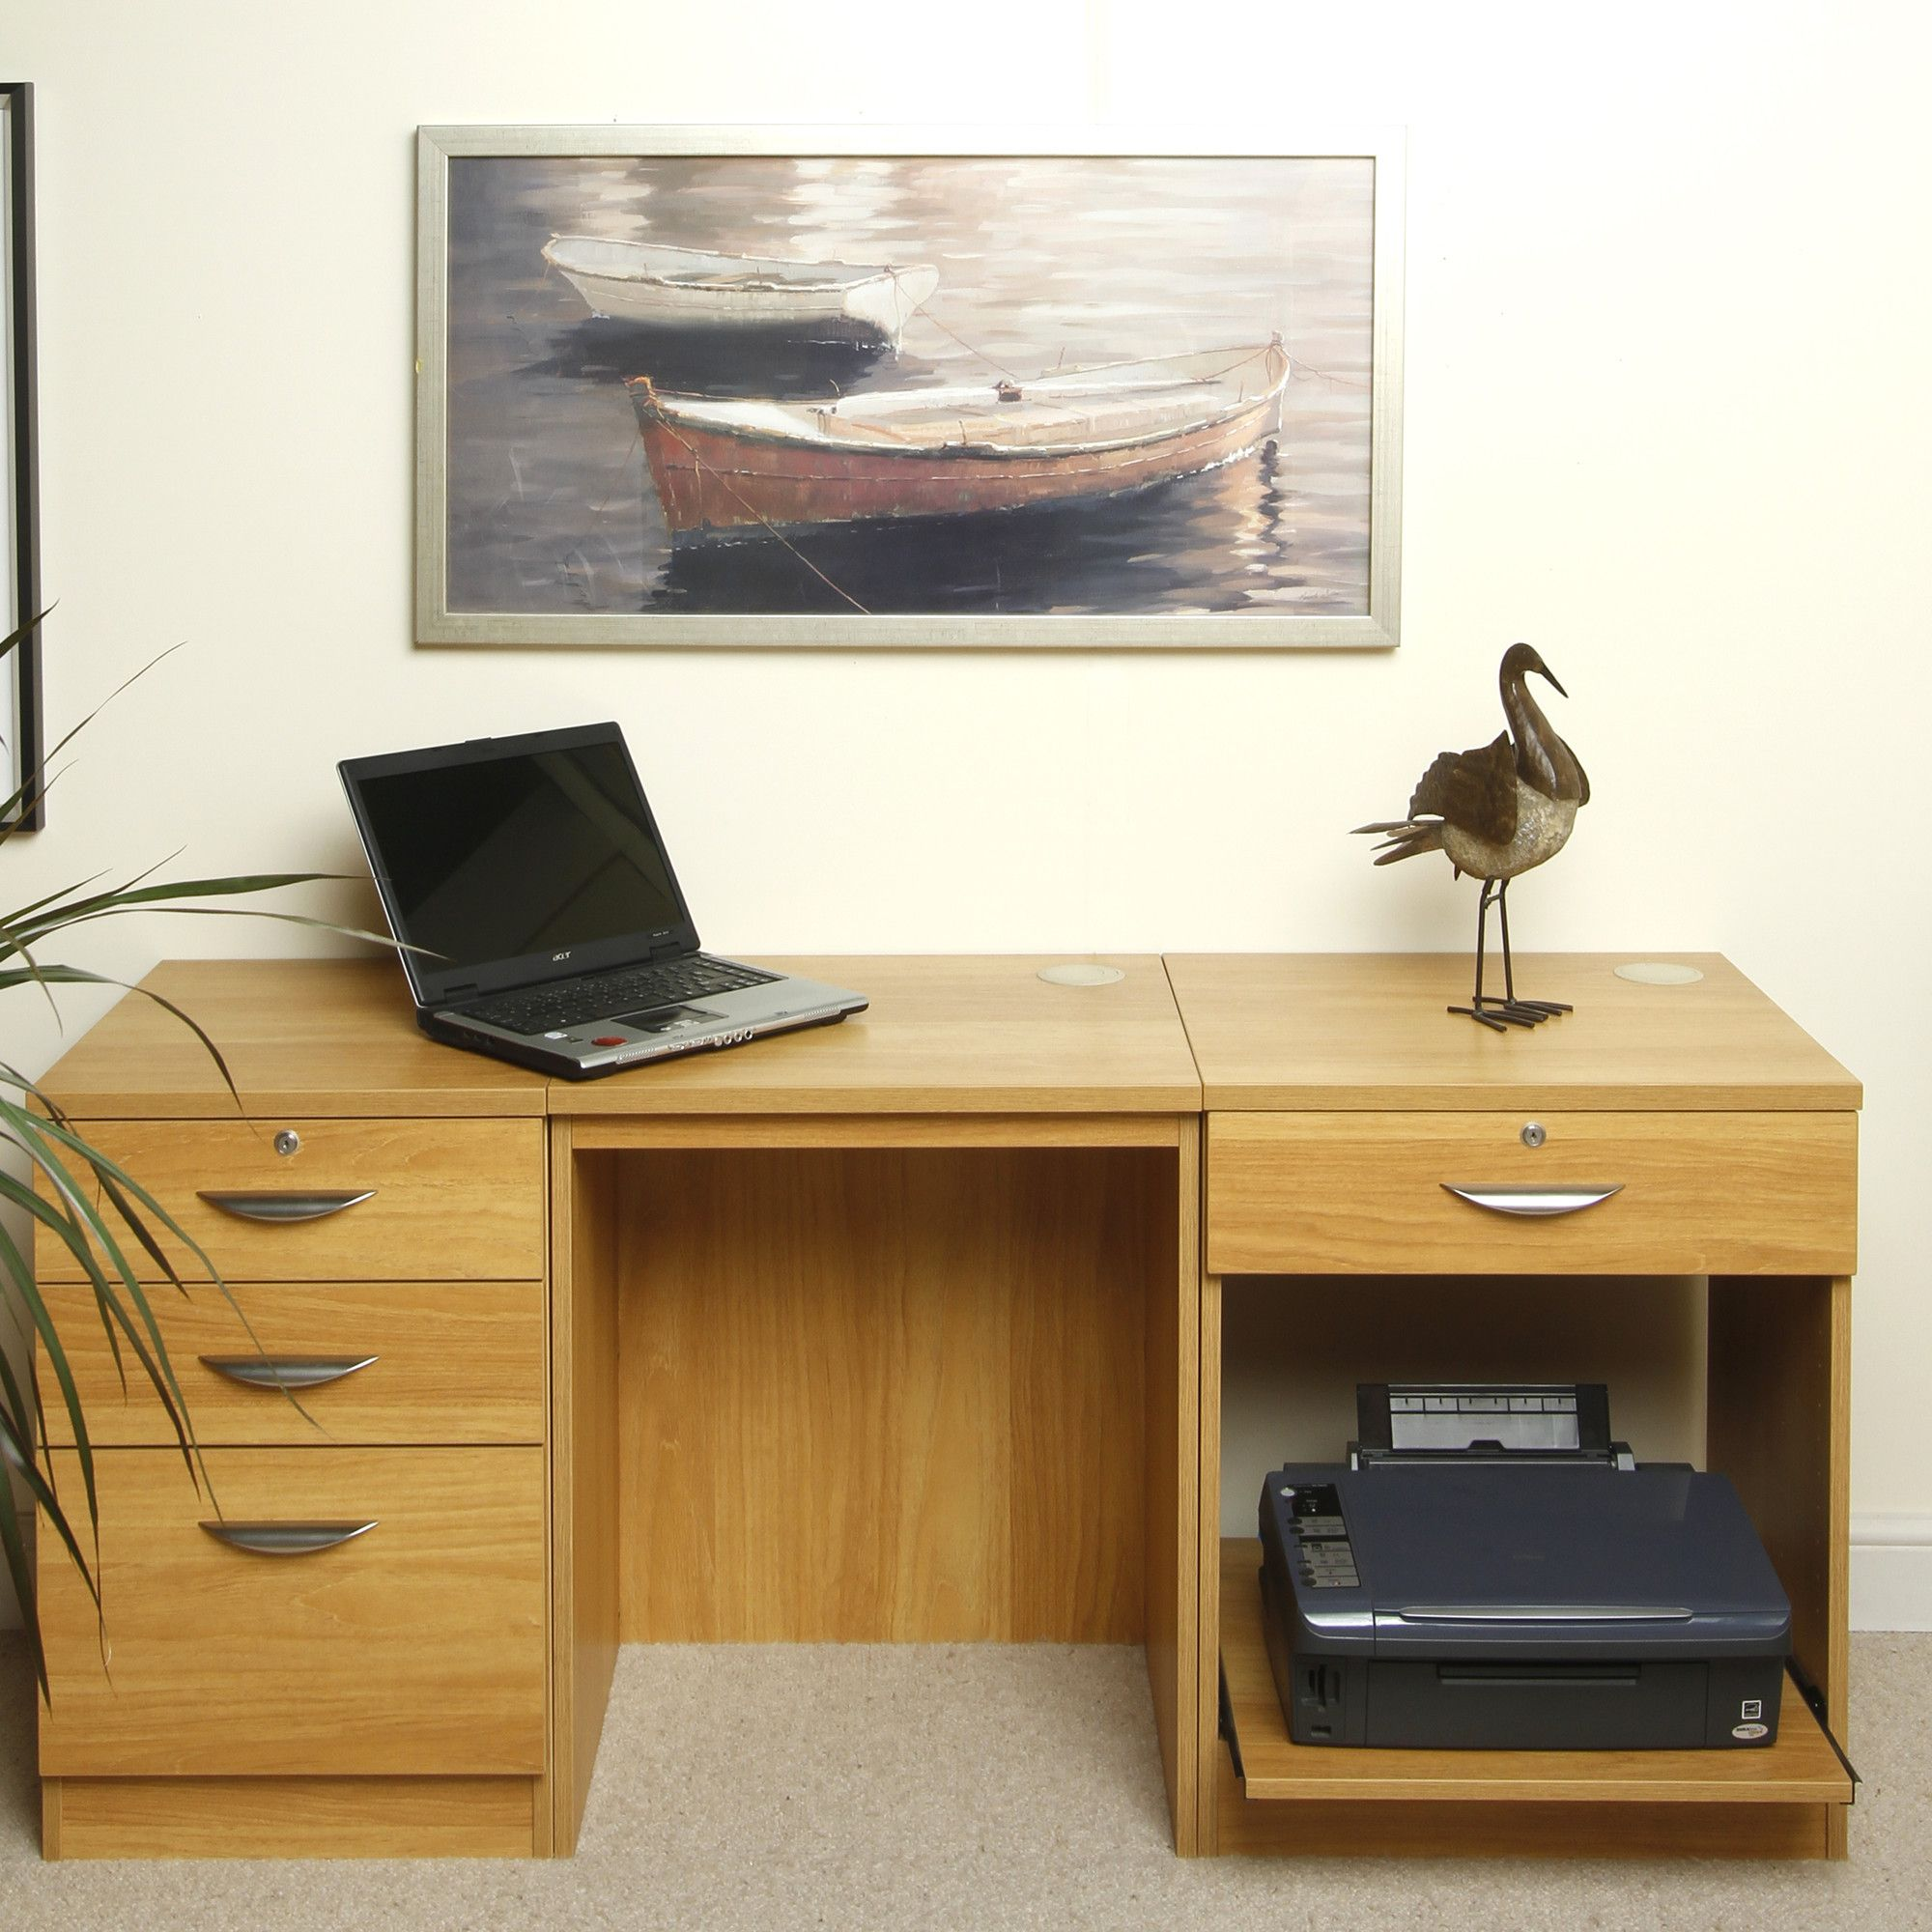 Enduro Home Office Desk / Workstation with Pedestal and Printer Storange - Warm Oak at Tesco Direct